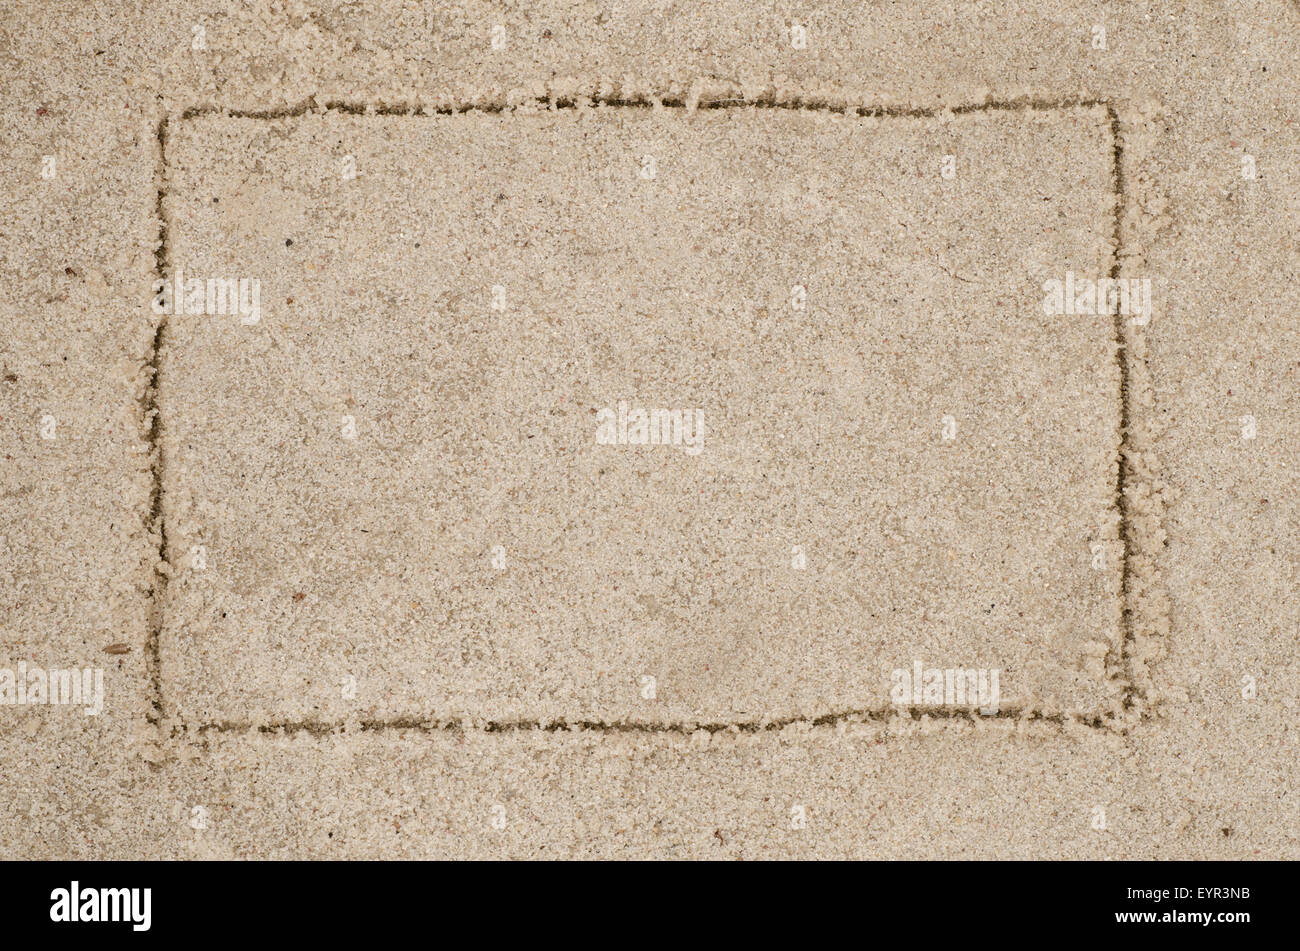 empty frame drawing on sand - Stock Image